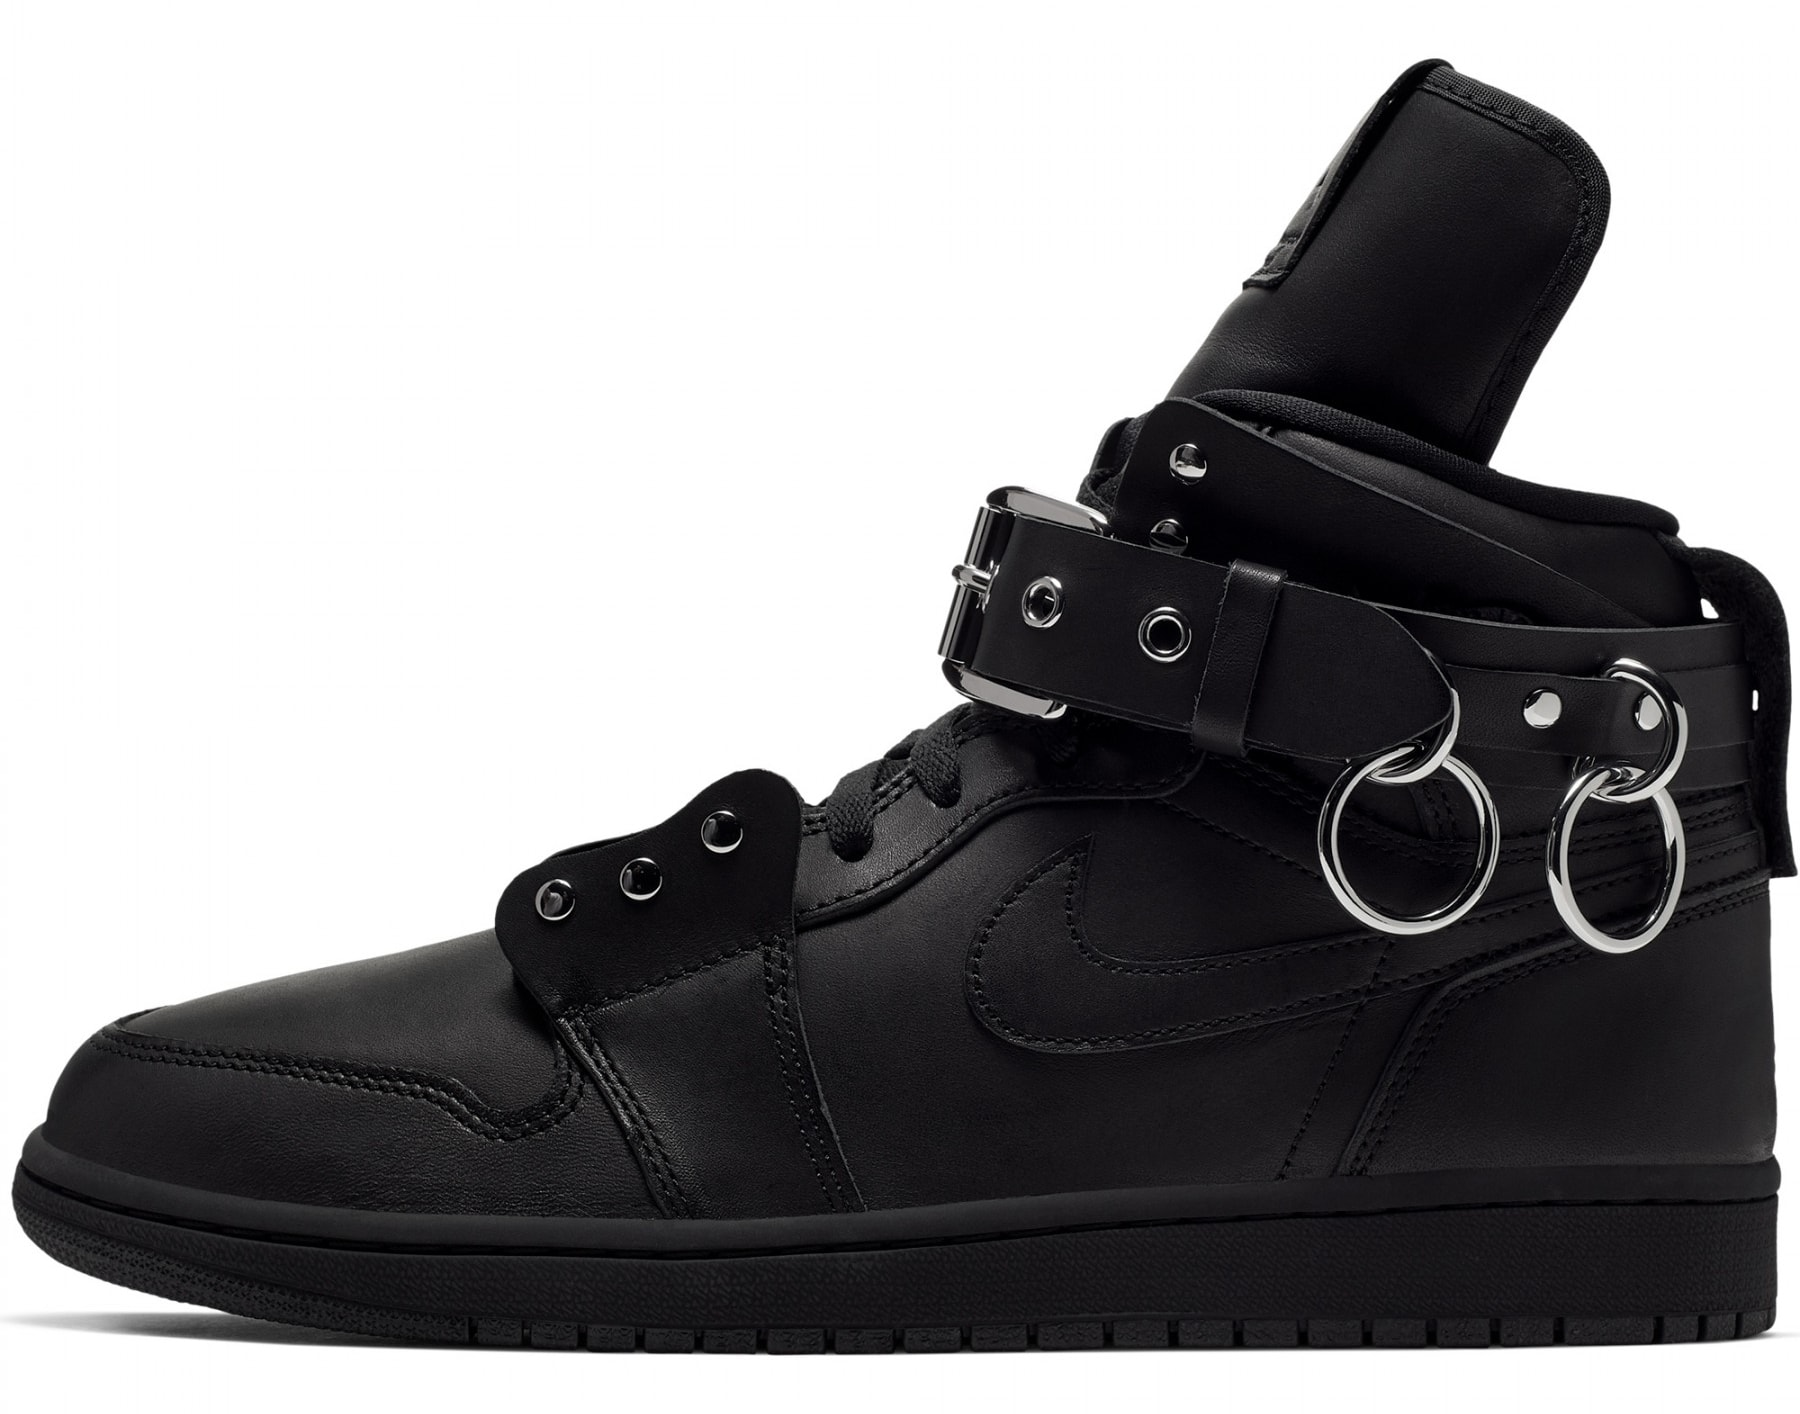 comme-des-garcons-air-jordan-1-high-black-cn5738-001-lateral